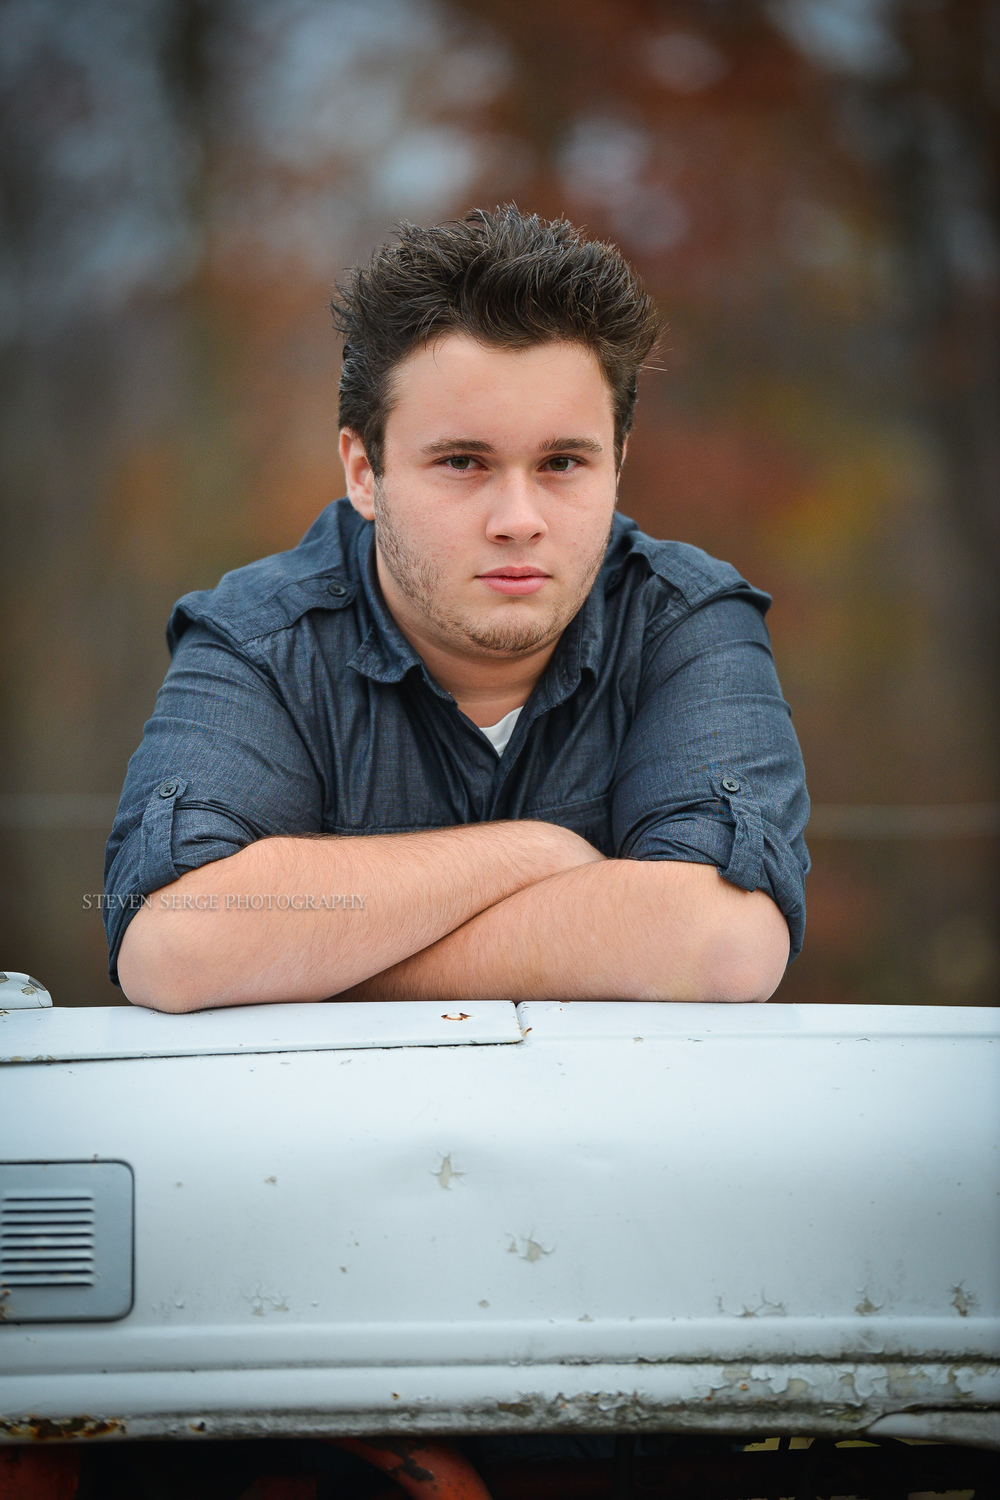 scranton-clarks-summit-nepa-senior-portrait-photographer-6.jpg